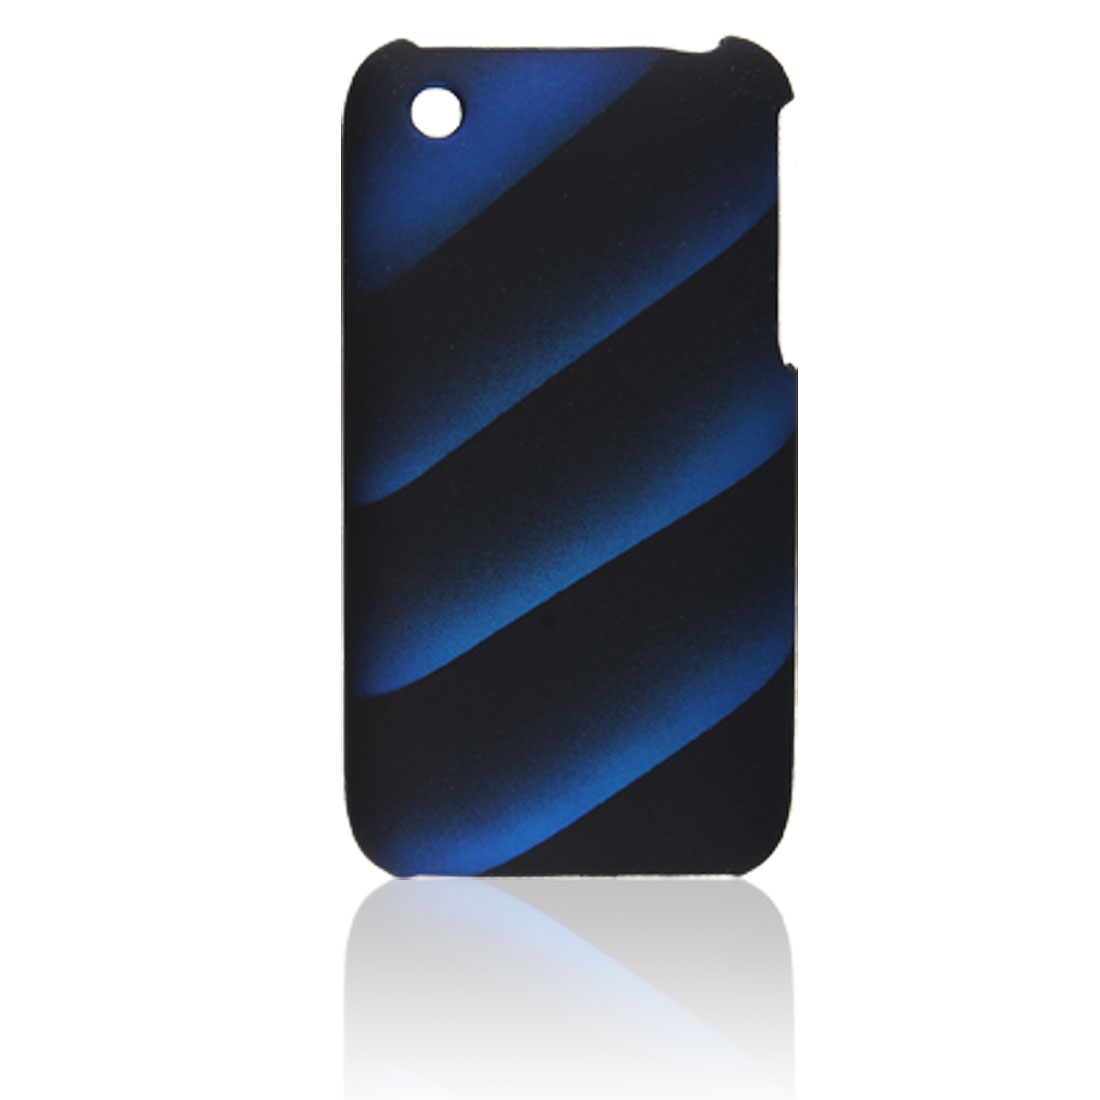 Blue Black Stripe Hard Plastic Back Cover for iPhone 3G